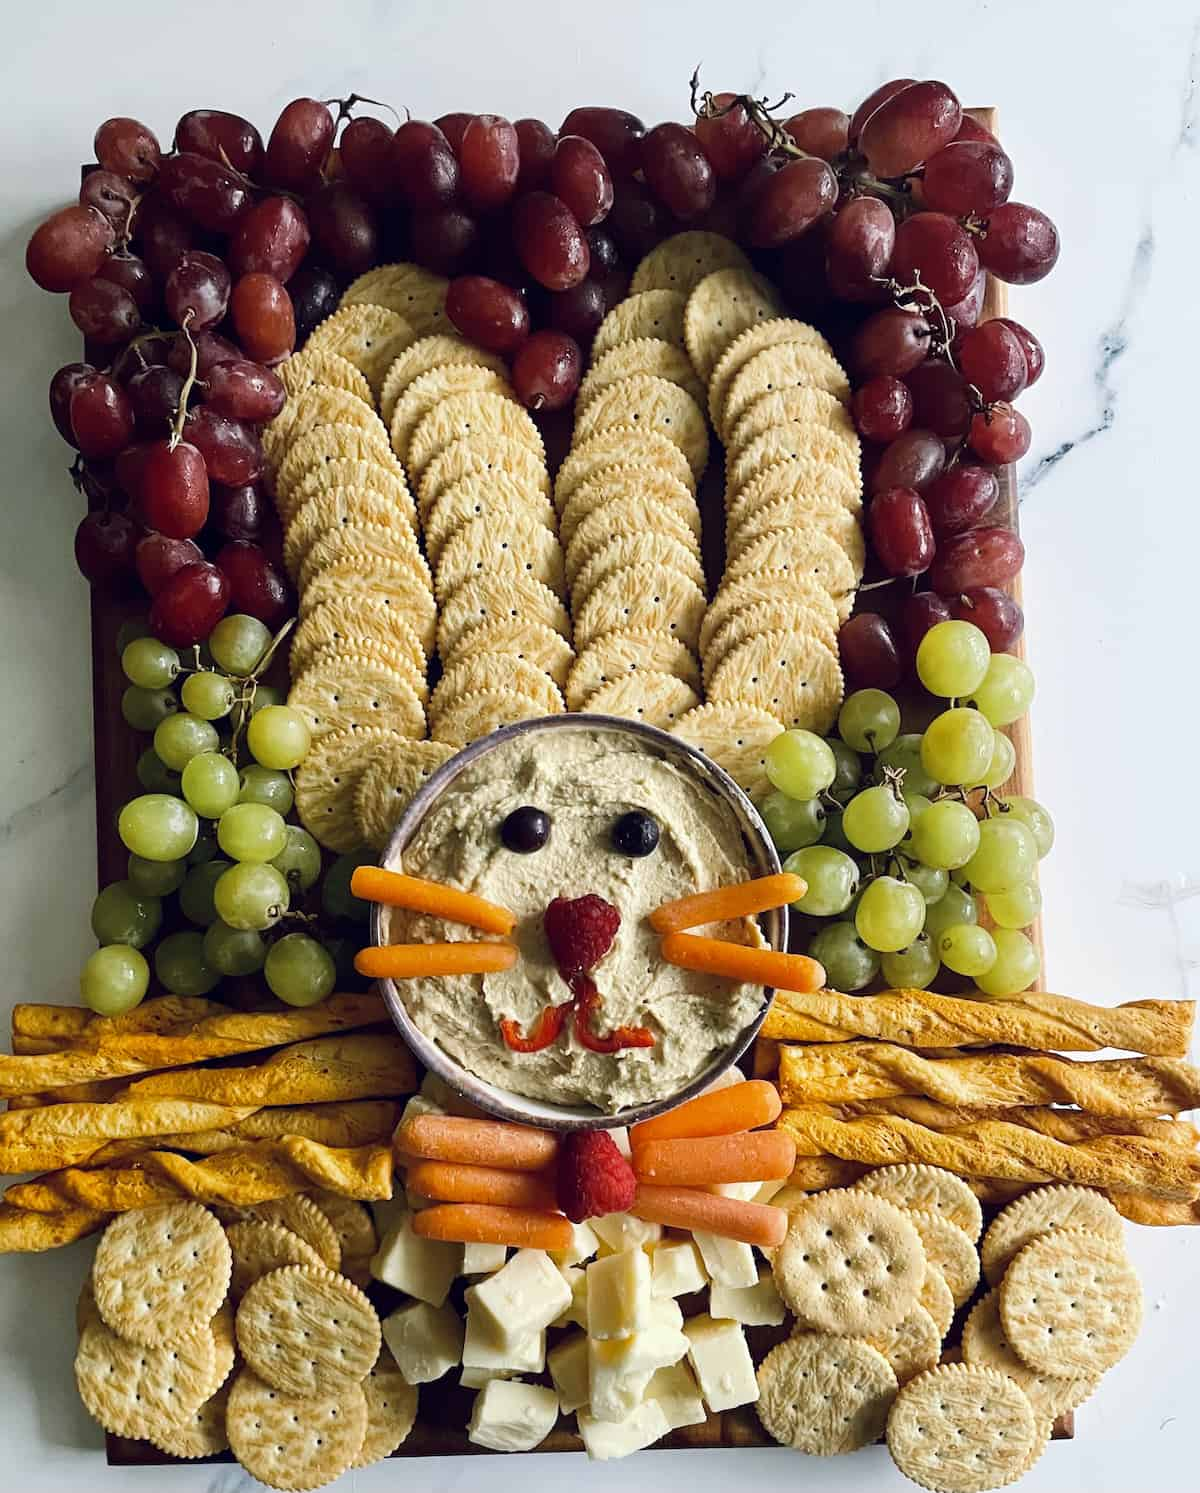 A bunny shaped fruit, cheese, and cracker tray, complete but missing the ears